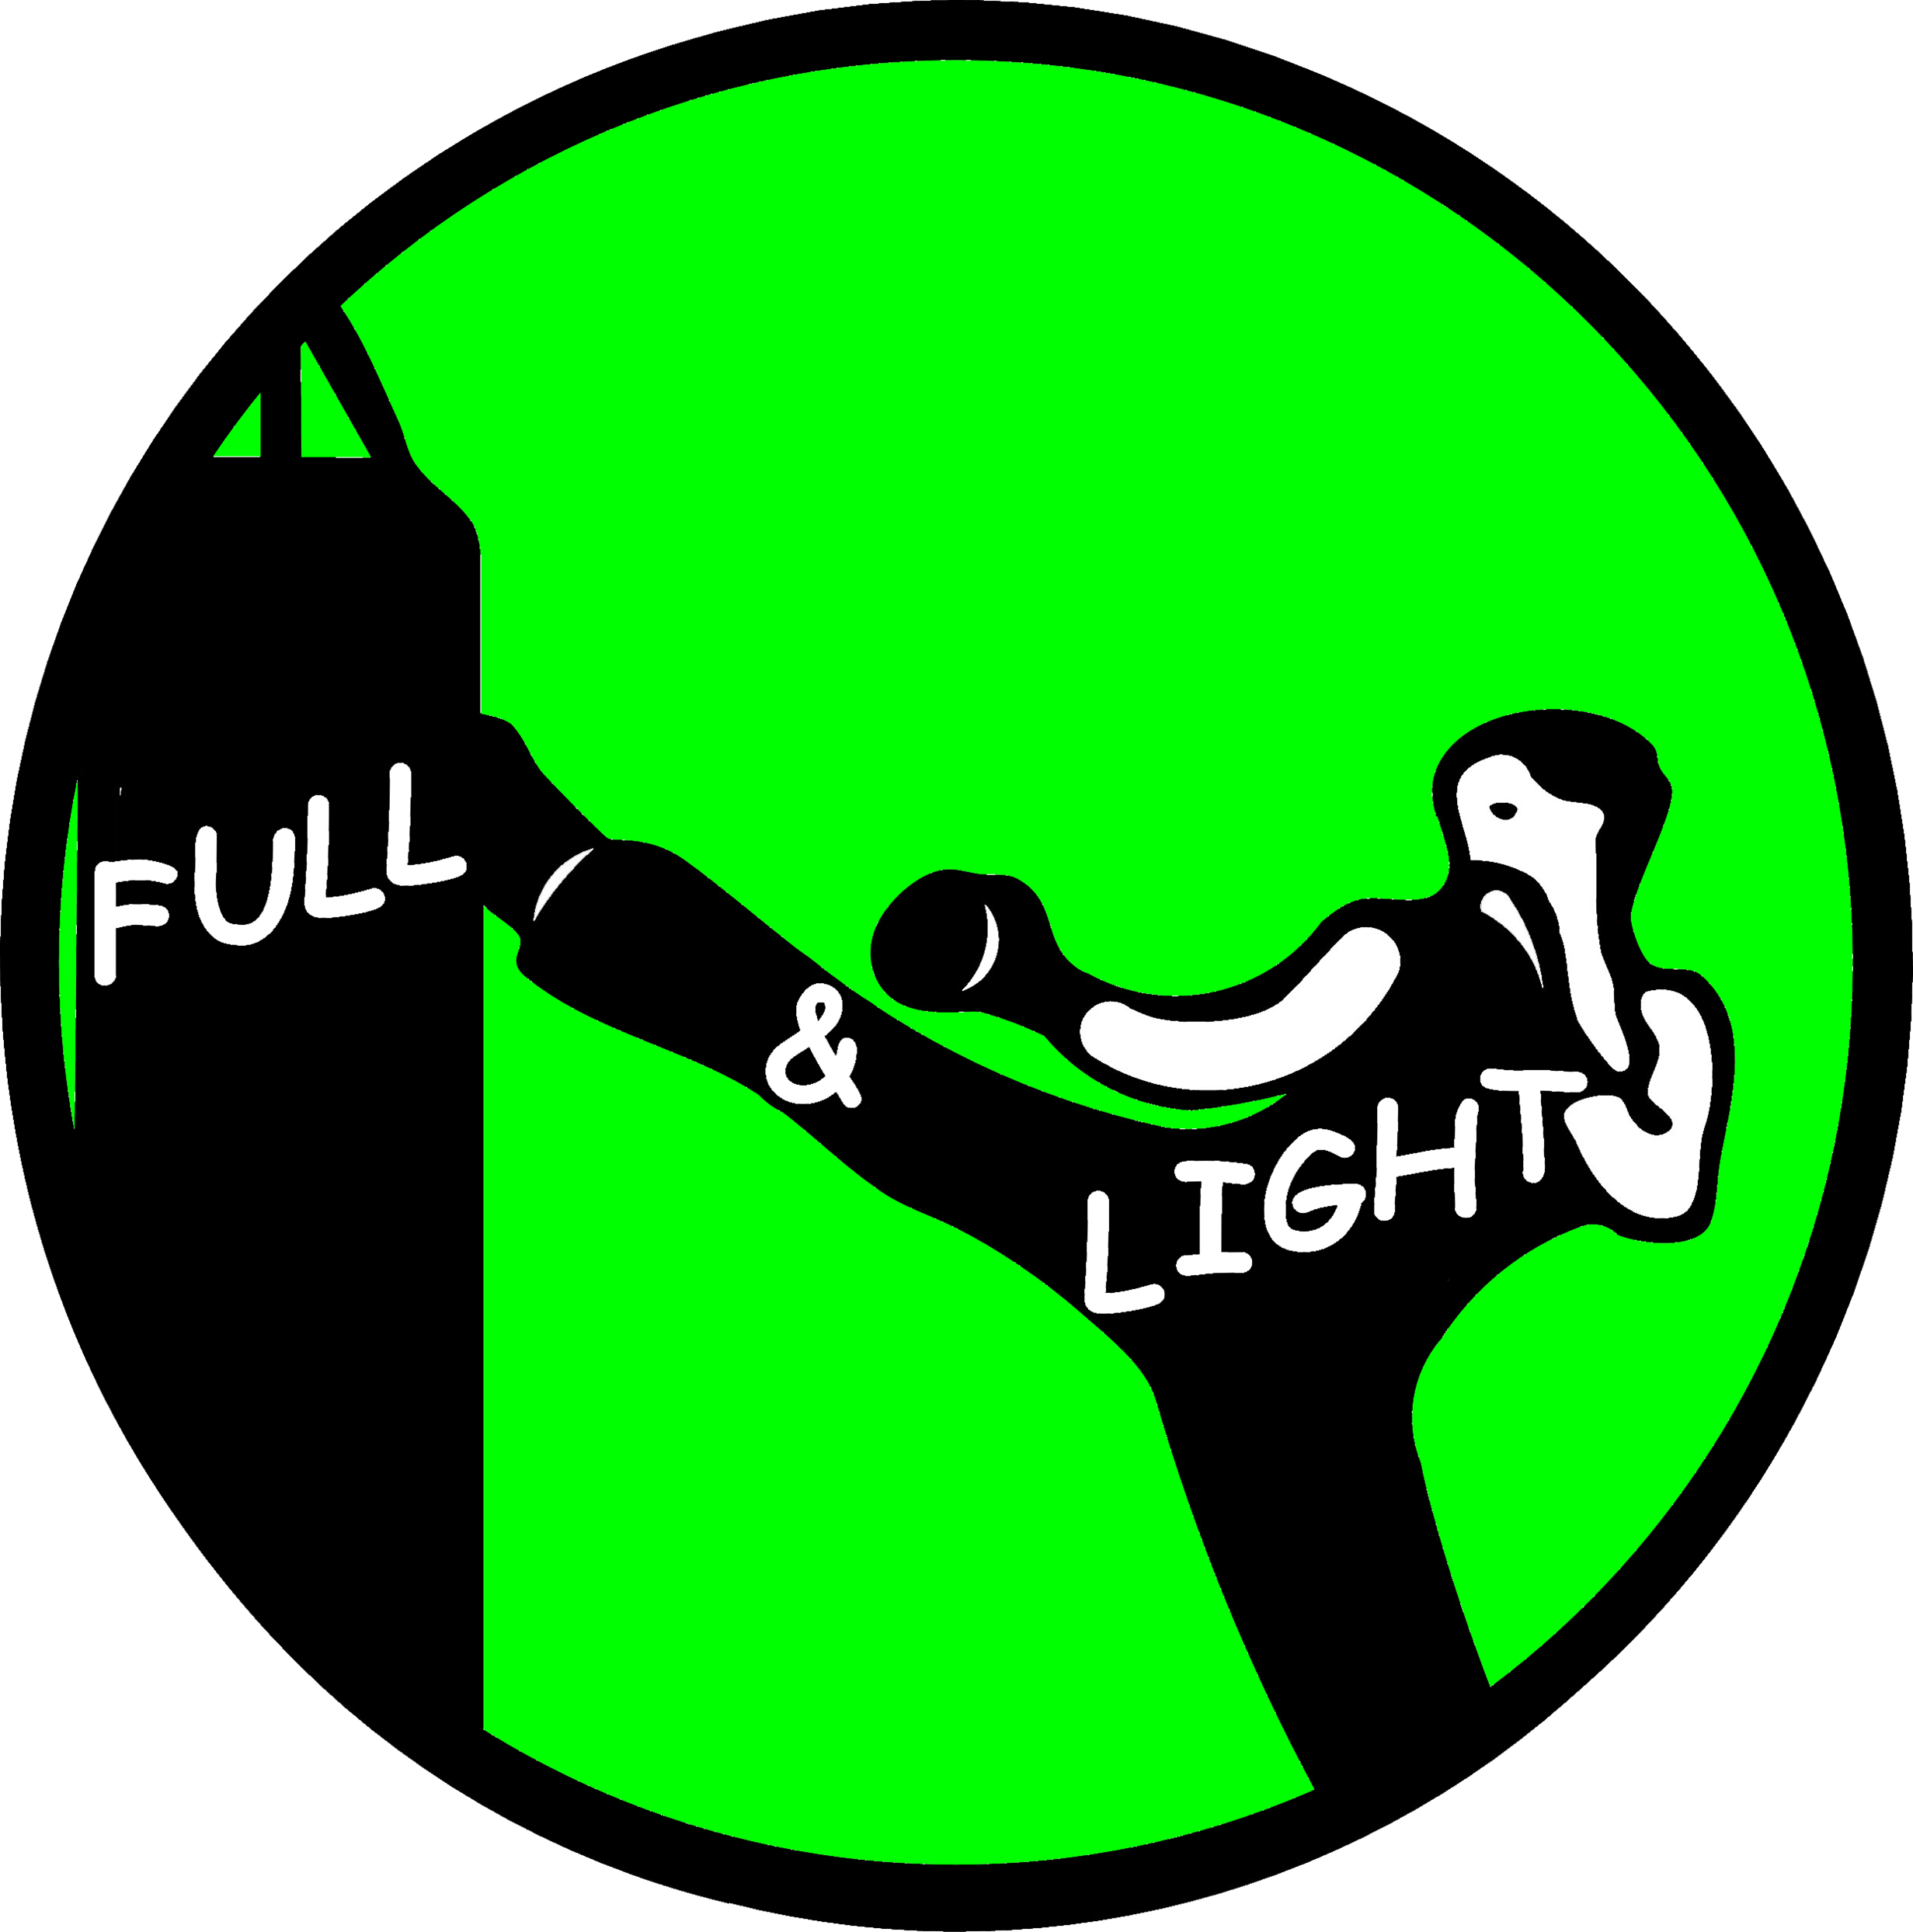 FULL & LIGHT